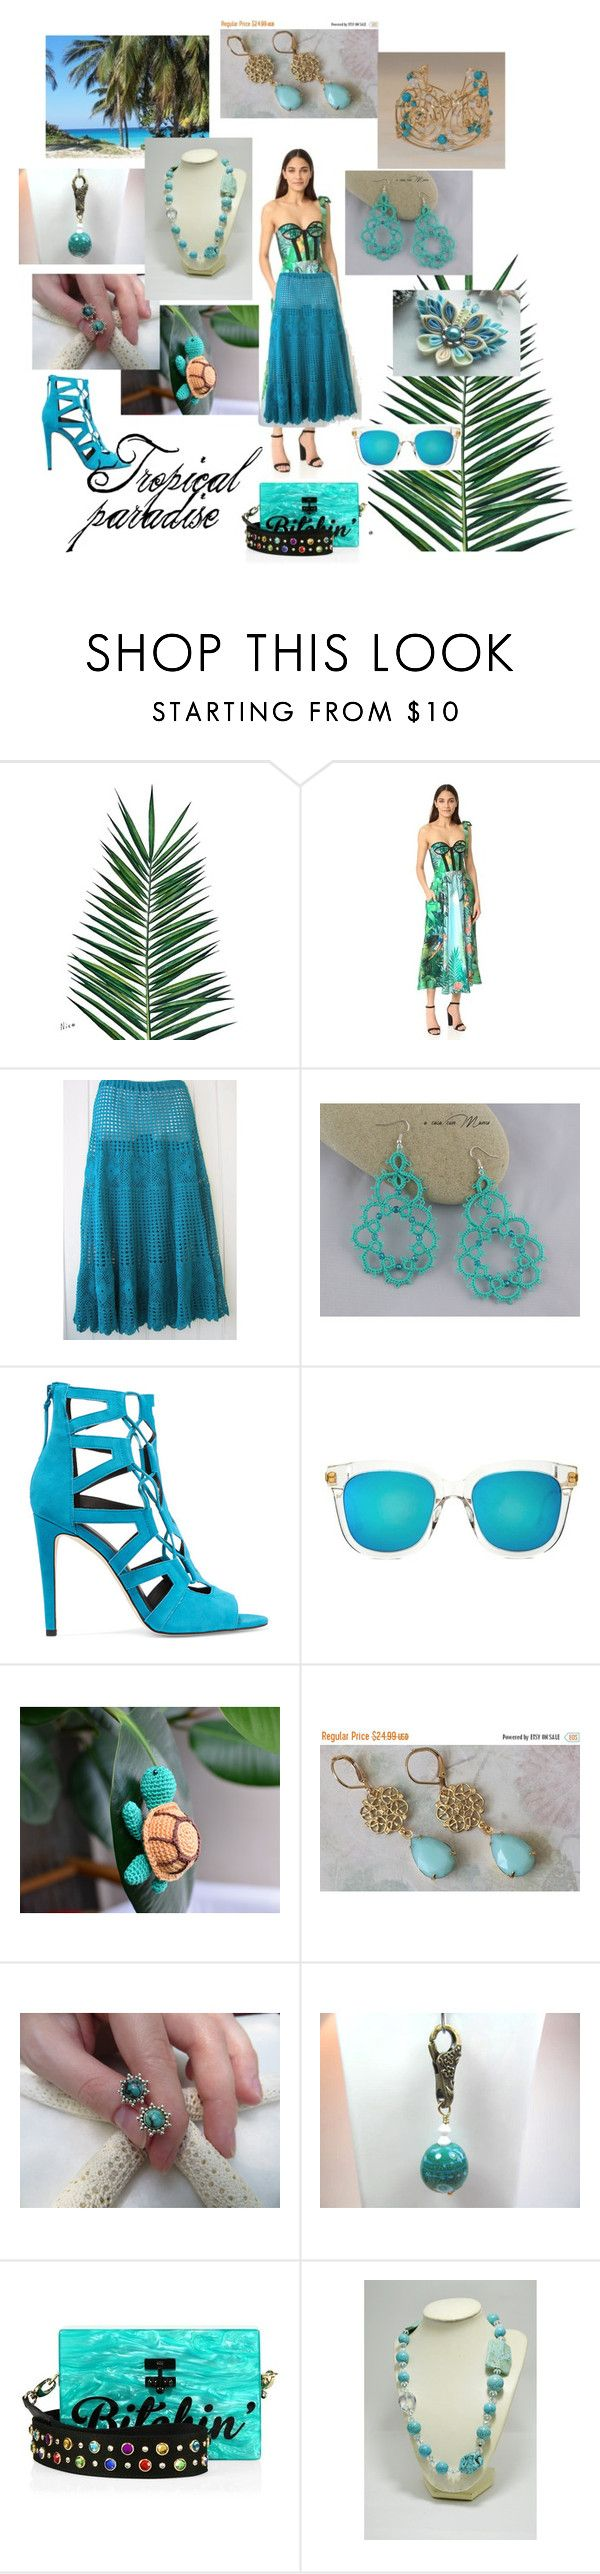 """Tropical paradise"" by varivodamar ❤ liked on Polyvore featuring Nika, Rochas, Rebecca Minkoff, Gentle Monster and Edie Parker"